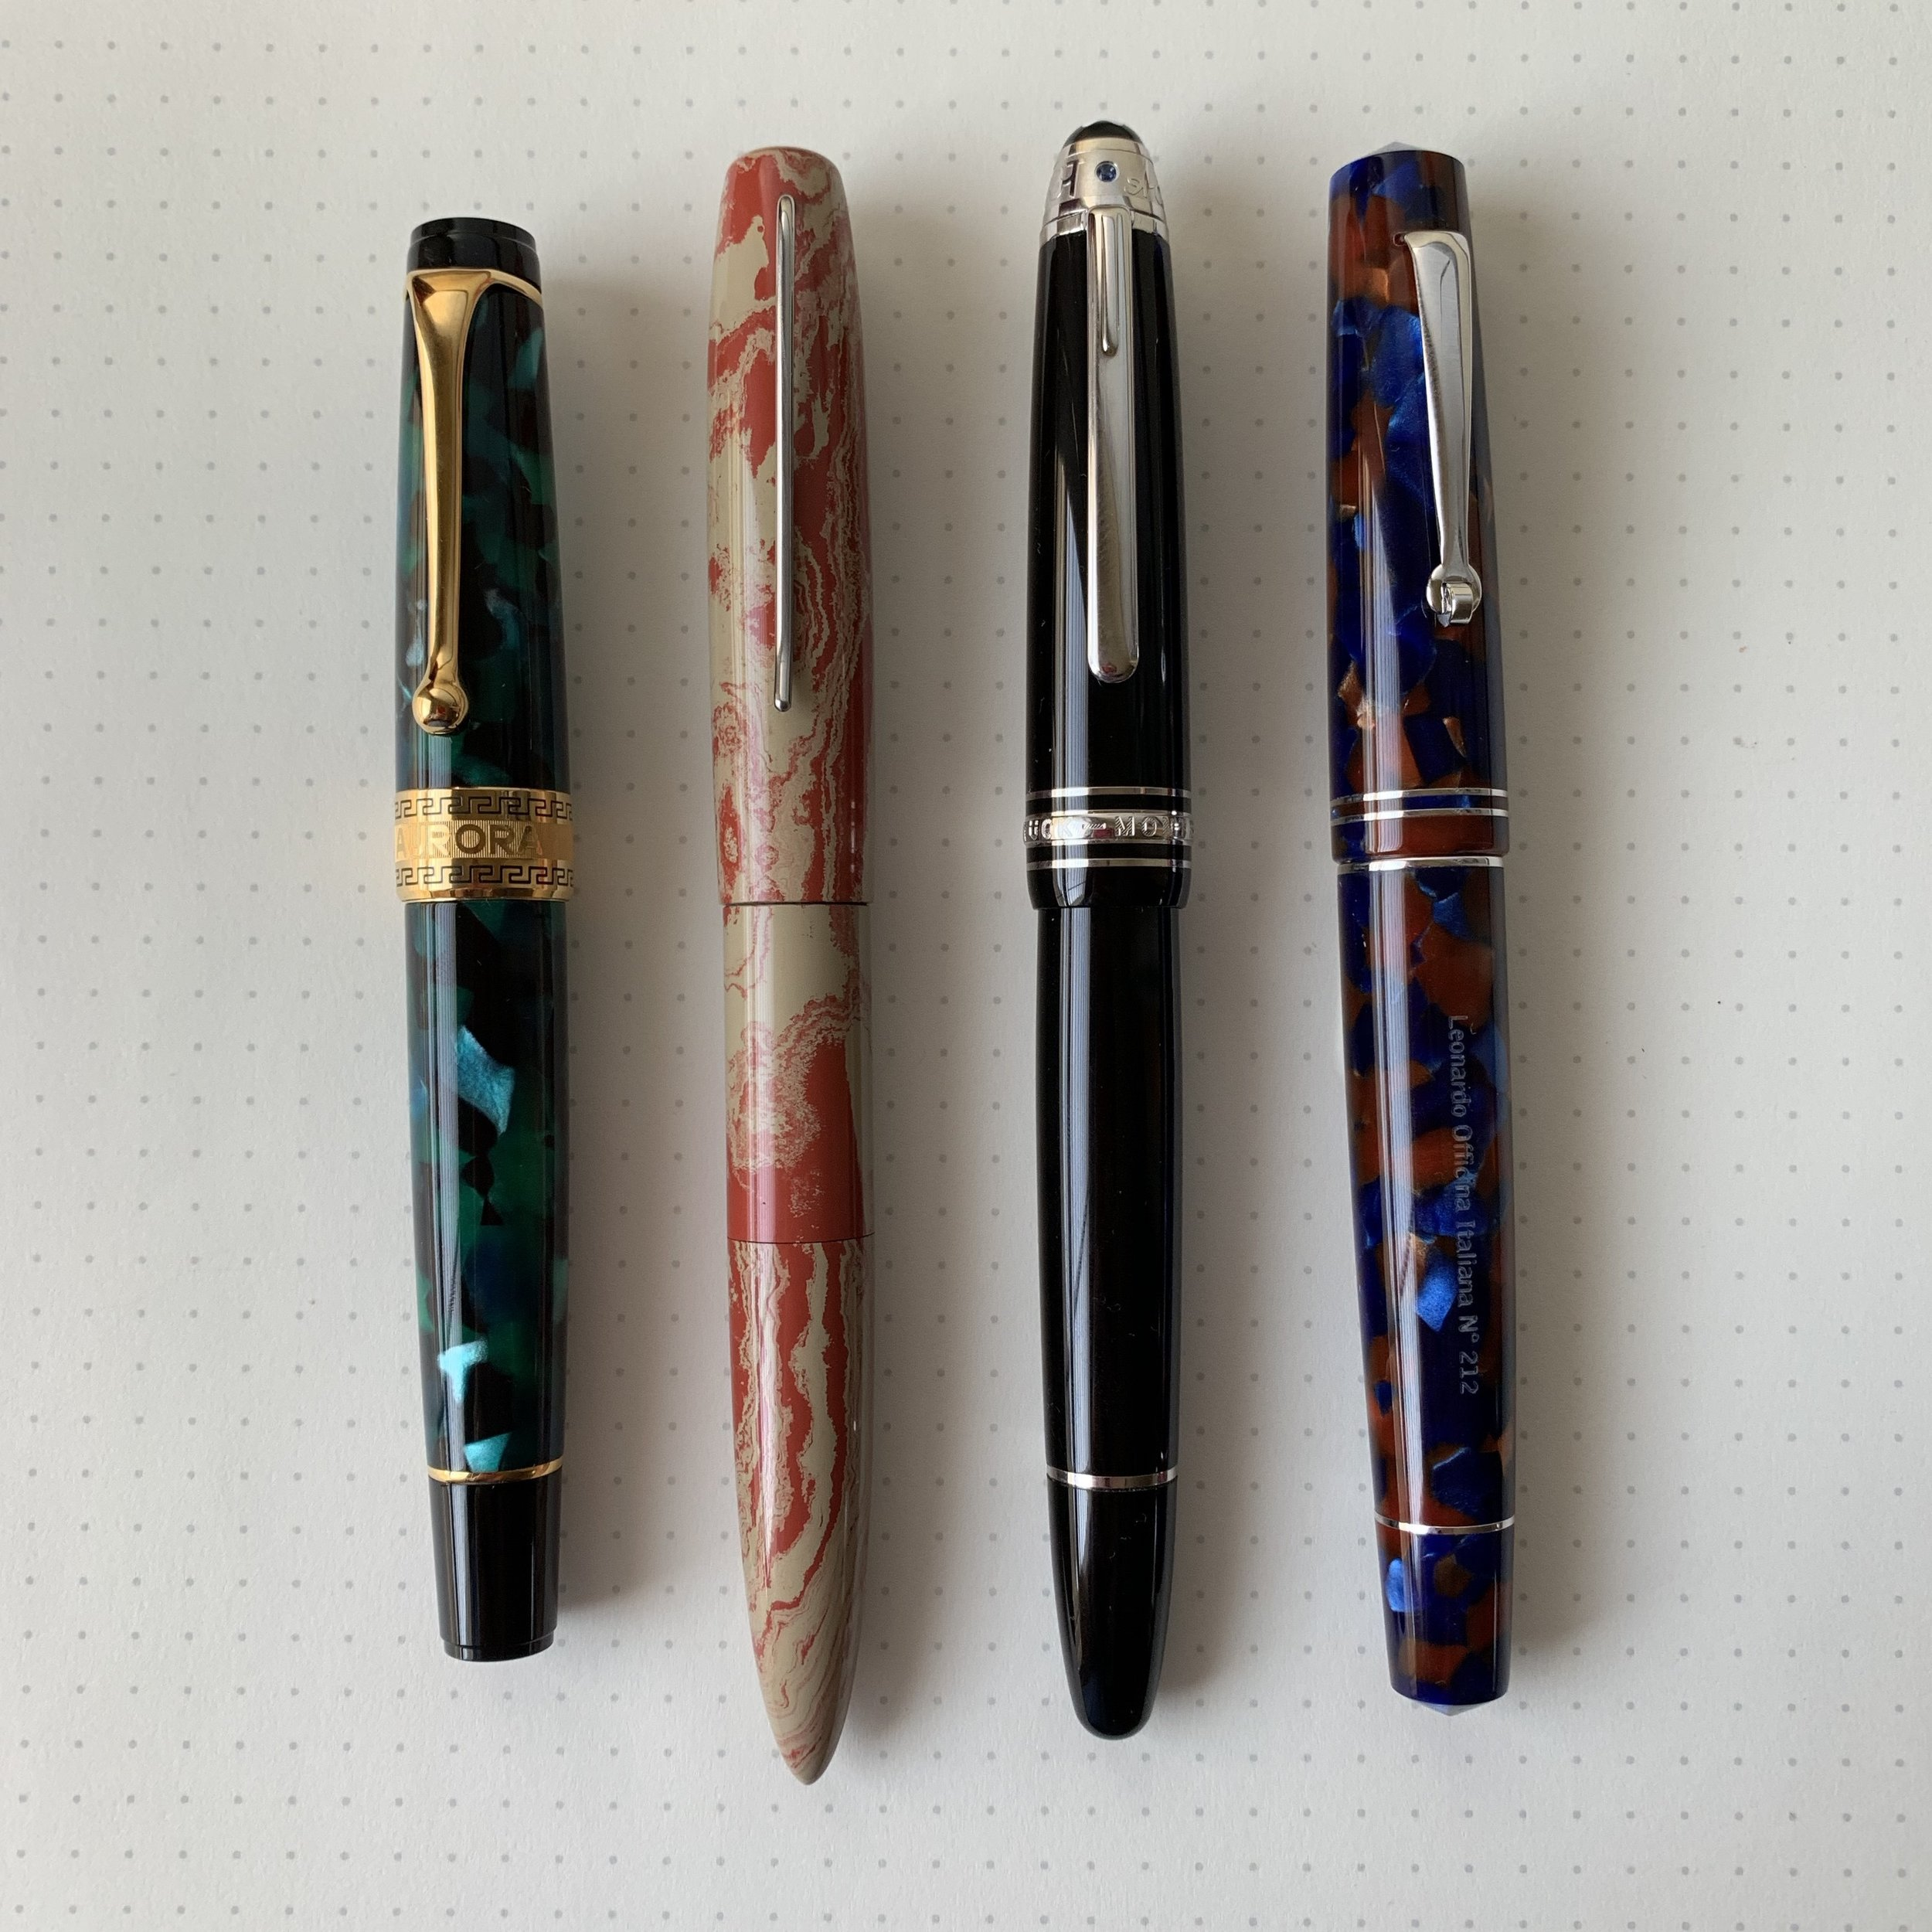 A comparison photo, from left:  Aurora Optima , Desiderata Soubriquet, Montblanc 146, and  Leonardo Momento Zero .